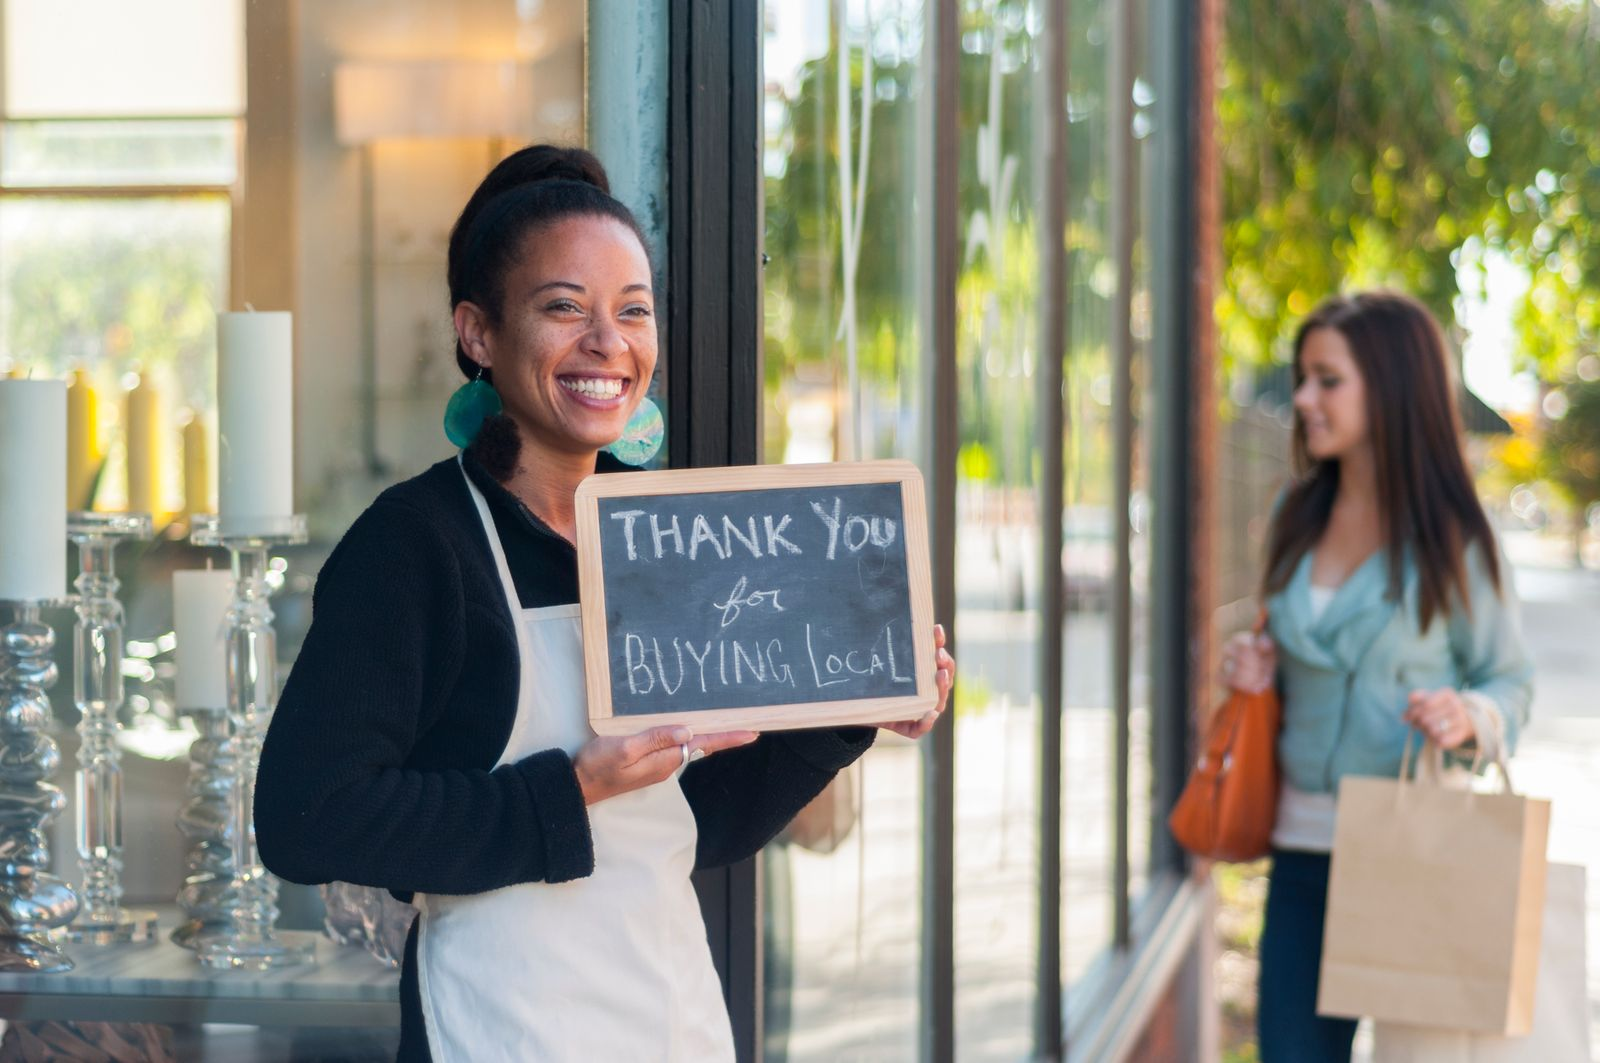 Local business owner thanking people for buying local